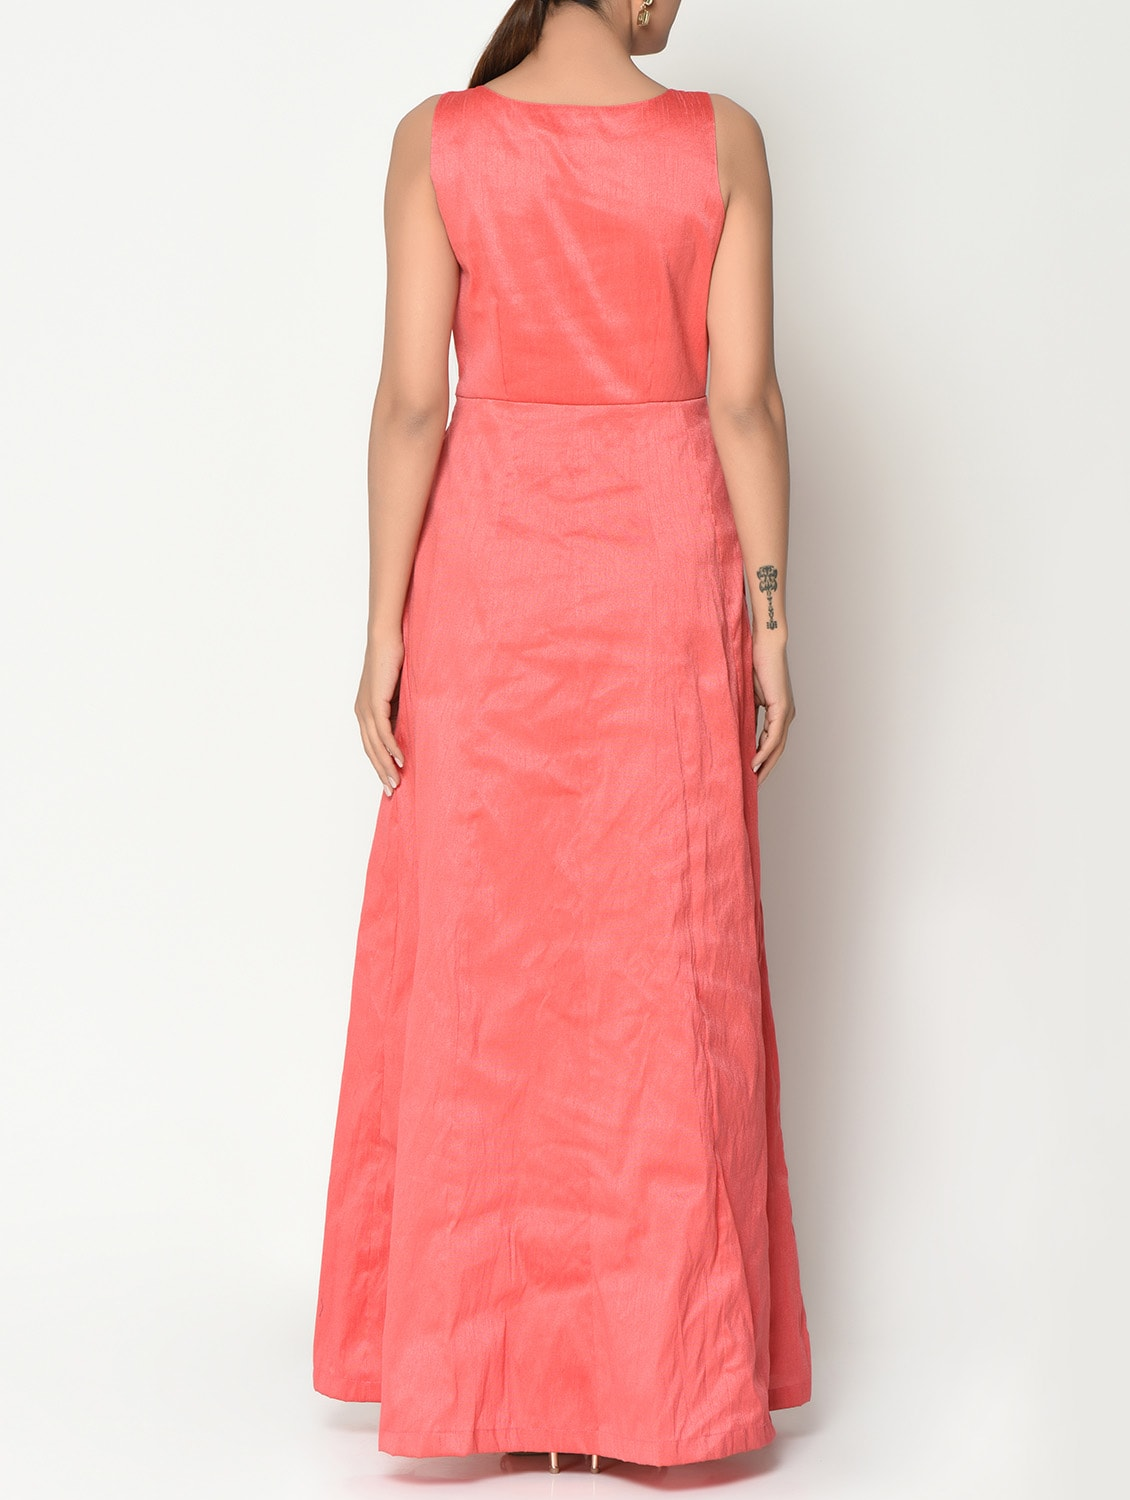 649a7768f90bf Buy Coral Pink Solid Maxi Dress for Women from Truebrowns for ₹1487 at 47%  off | 2019 Limeroad.com